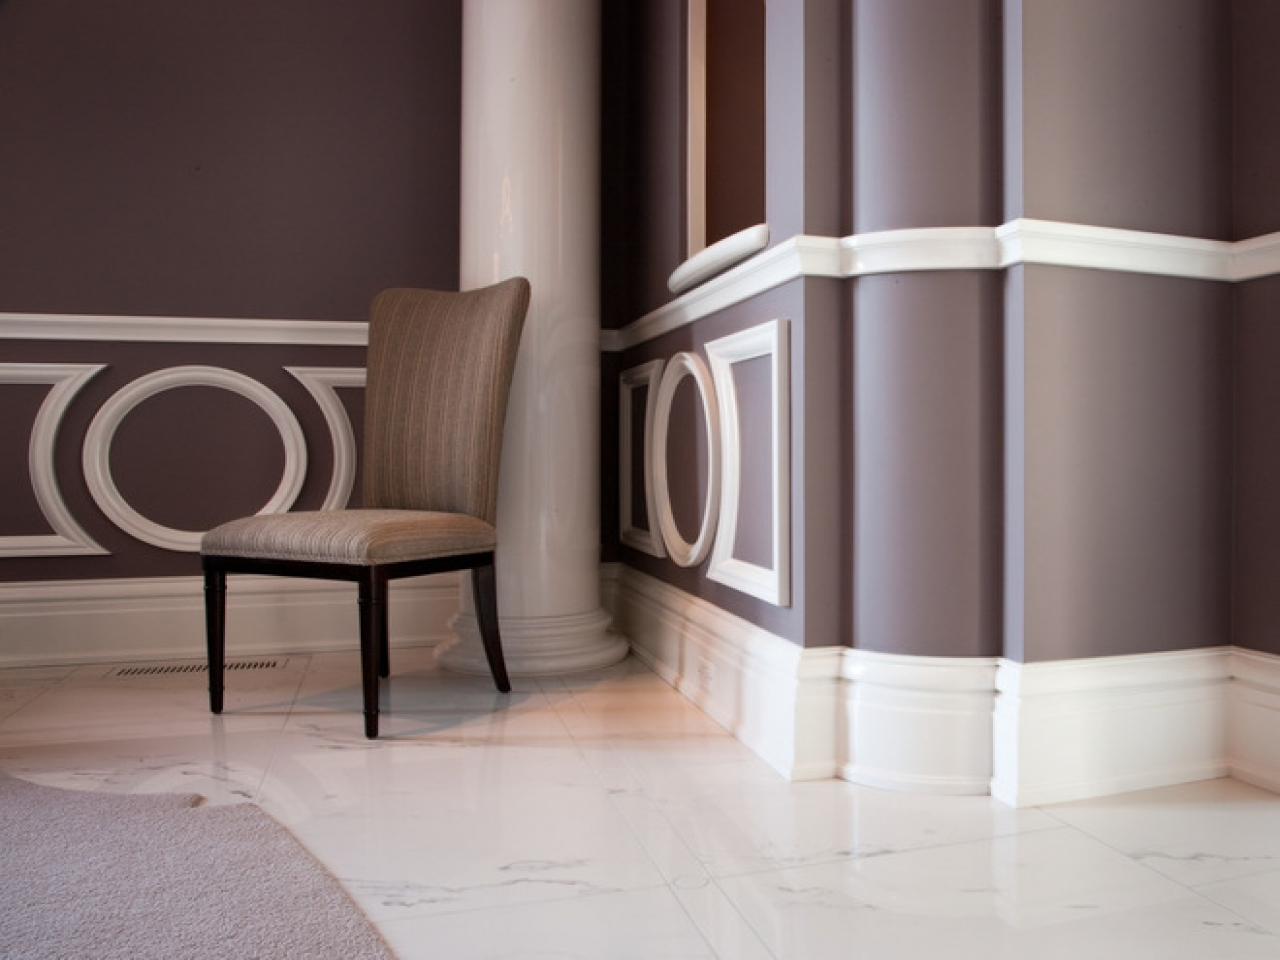 Wallpaper For Dining Room With Chair Rail Ideas Wallpaper Living Room Chair Rail Lowes 1280x960 Wallpaper Teahub Io